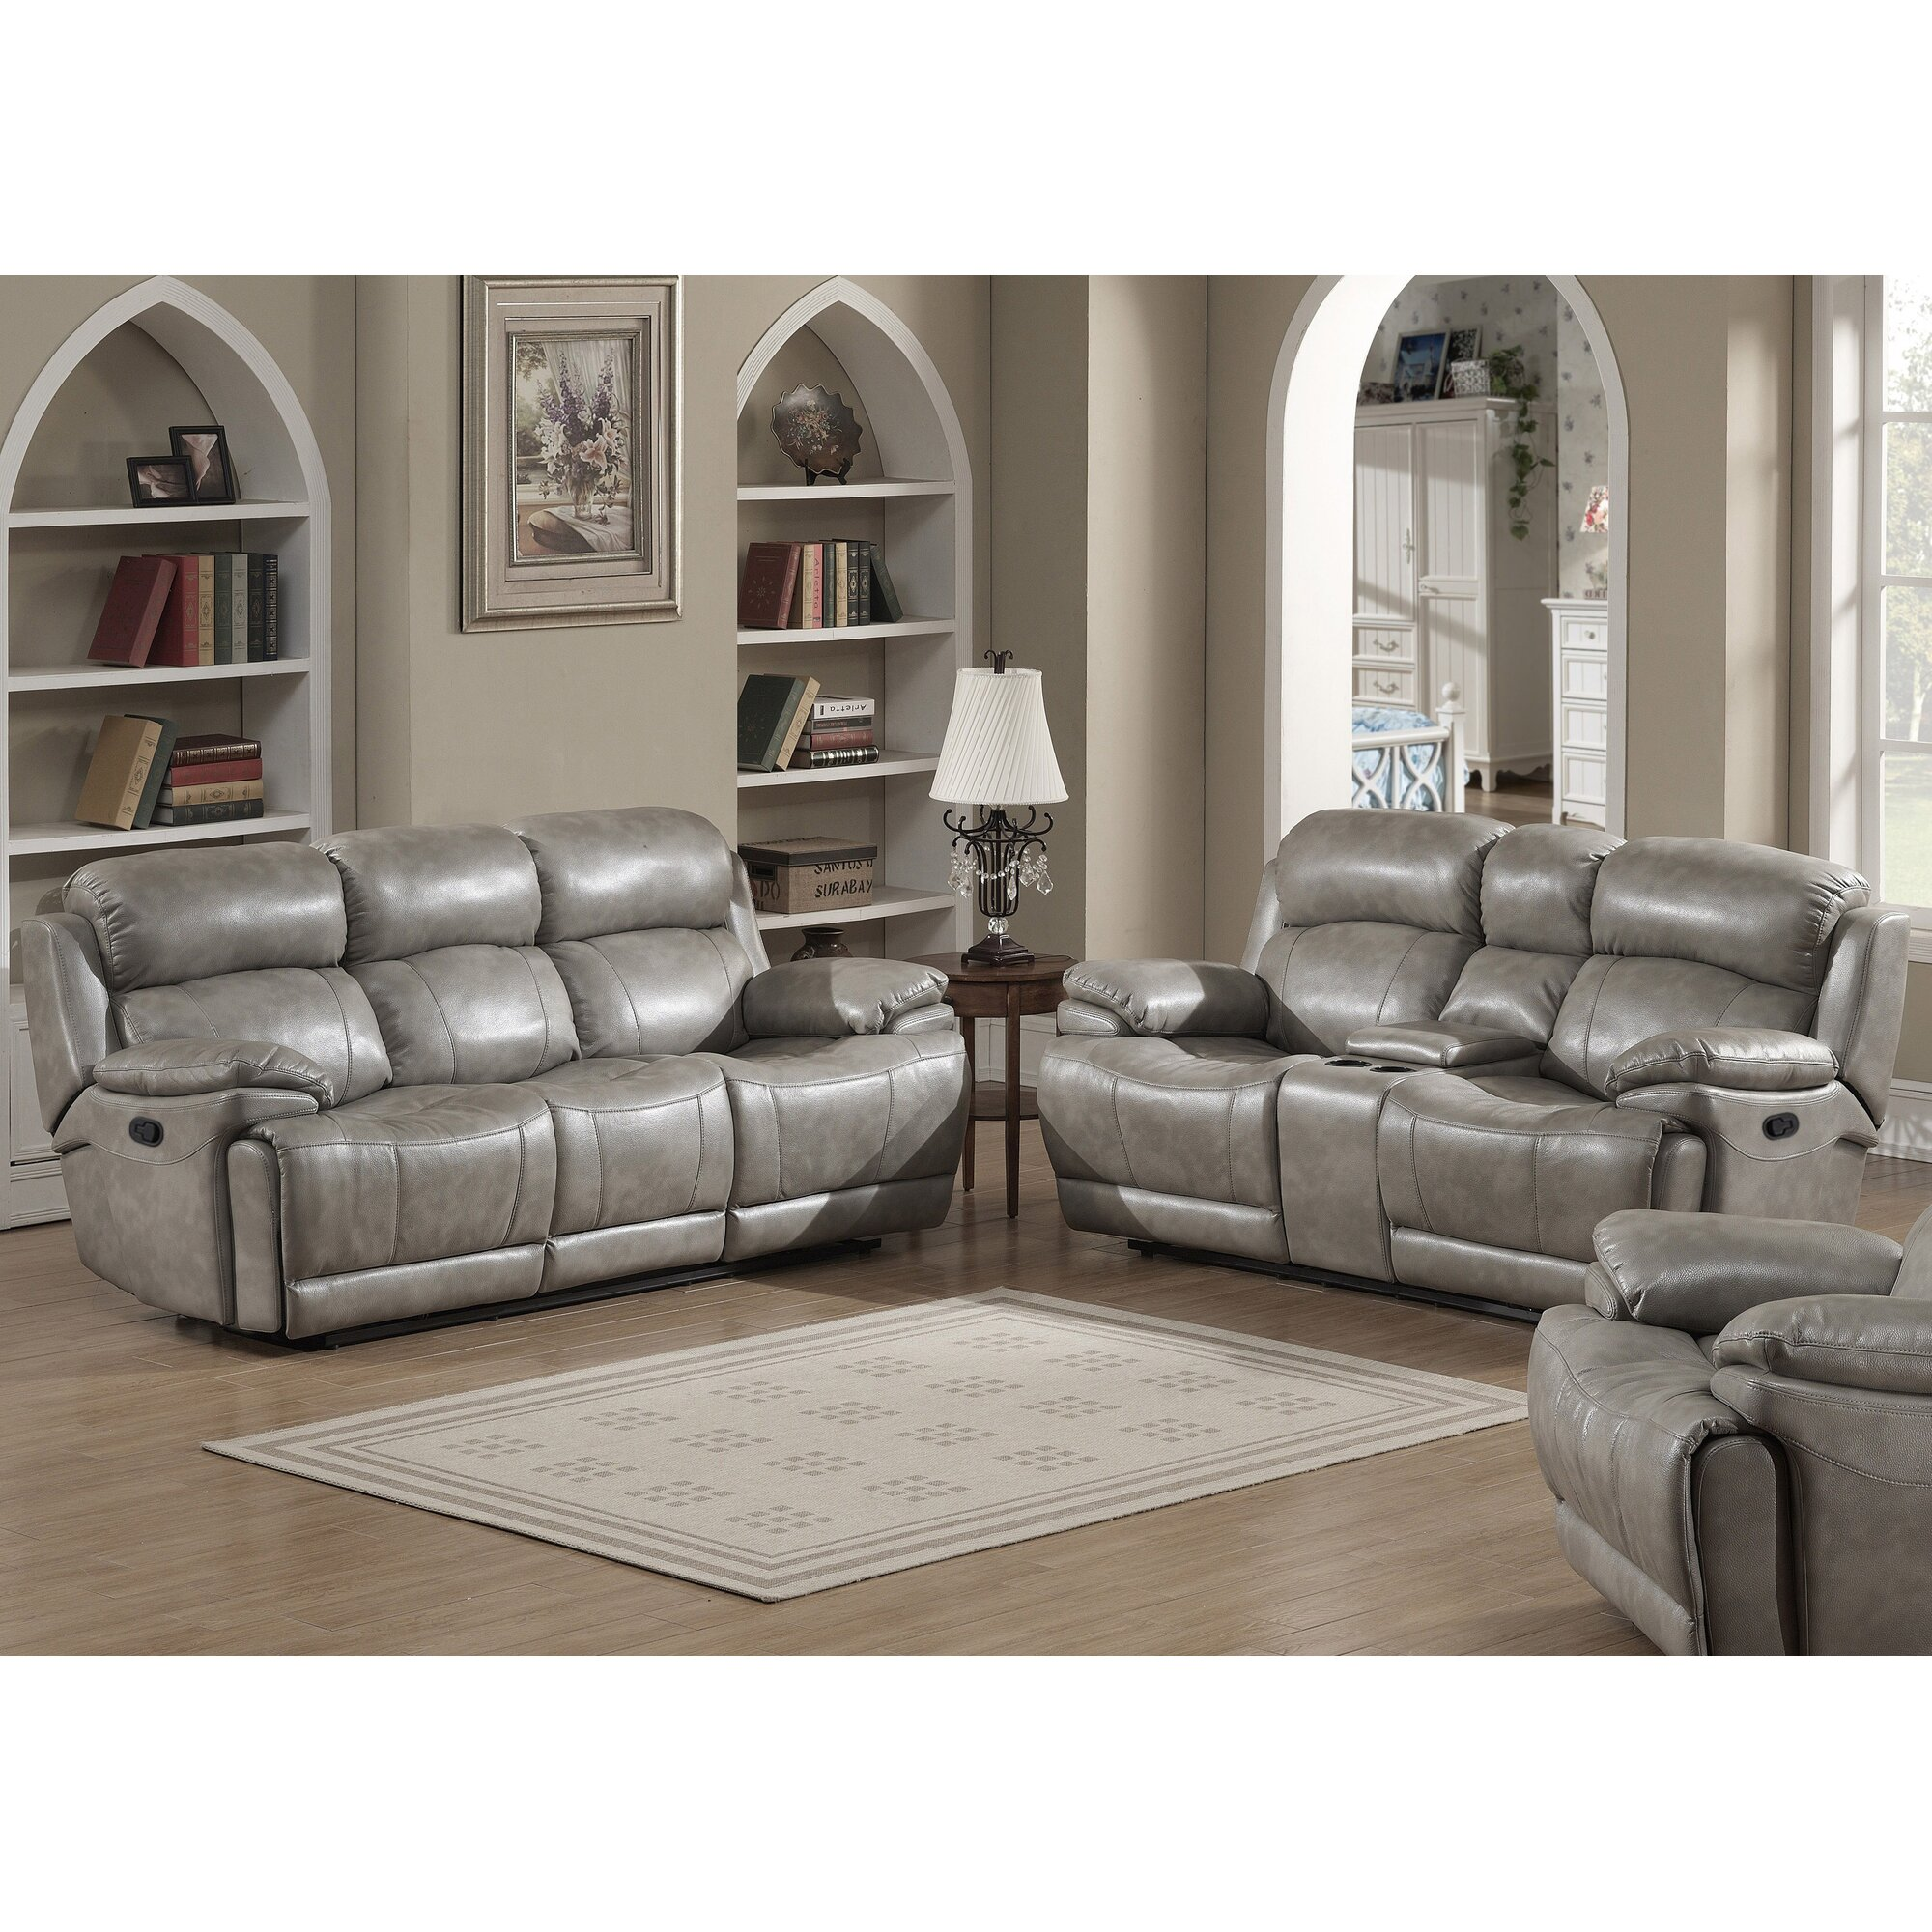 Sofa And Loveseat Sets Interesting Darby Home Co Jorgensen Leather Sofa And Loveseat Set